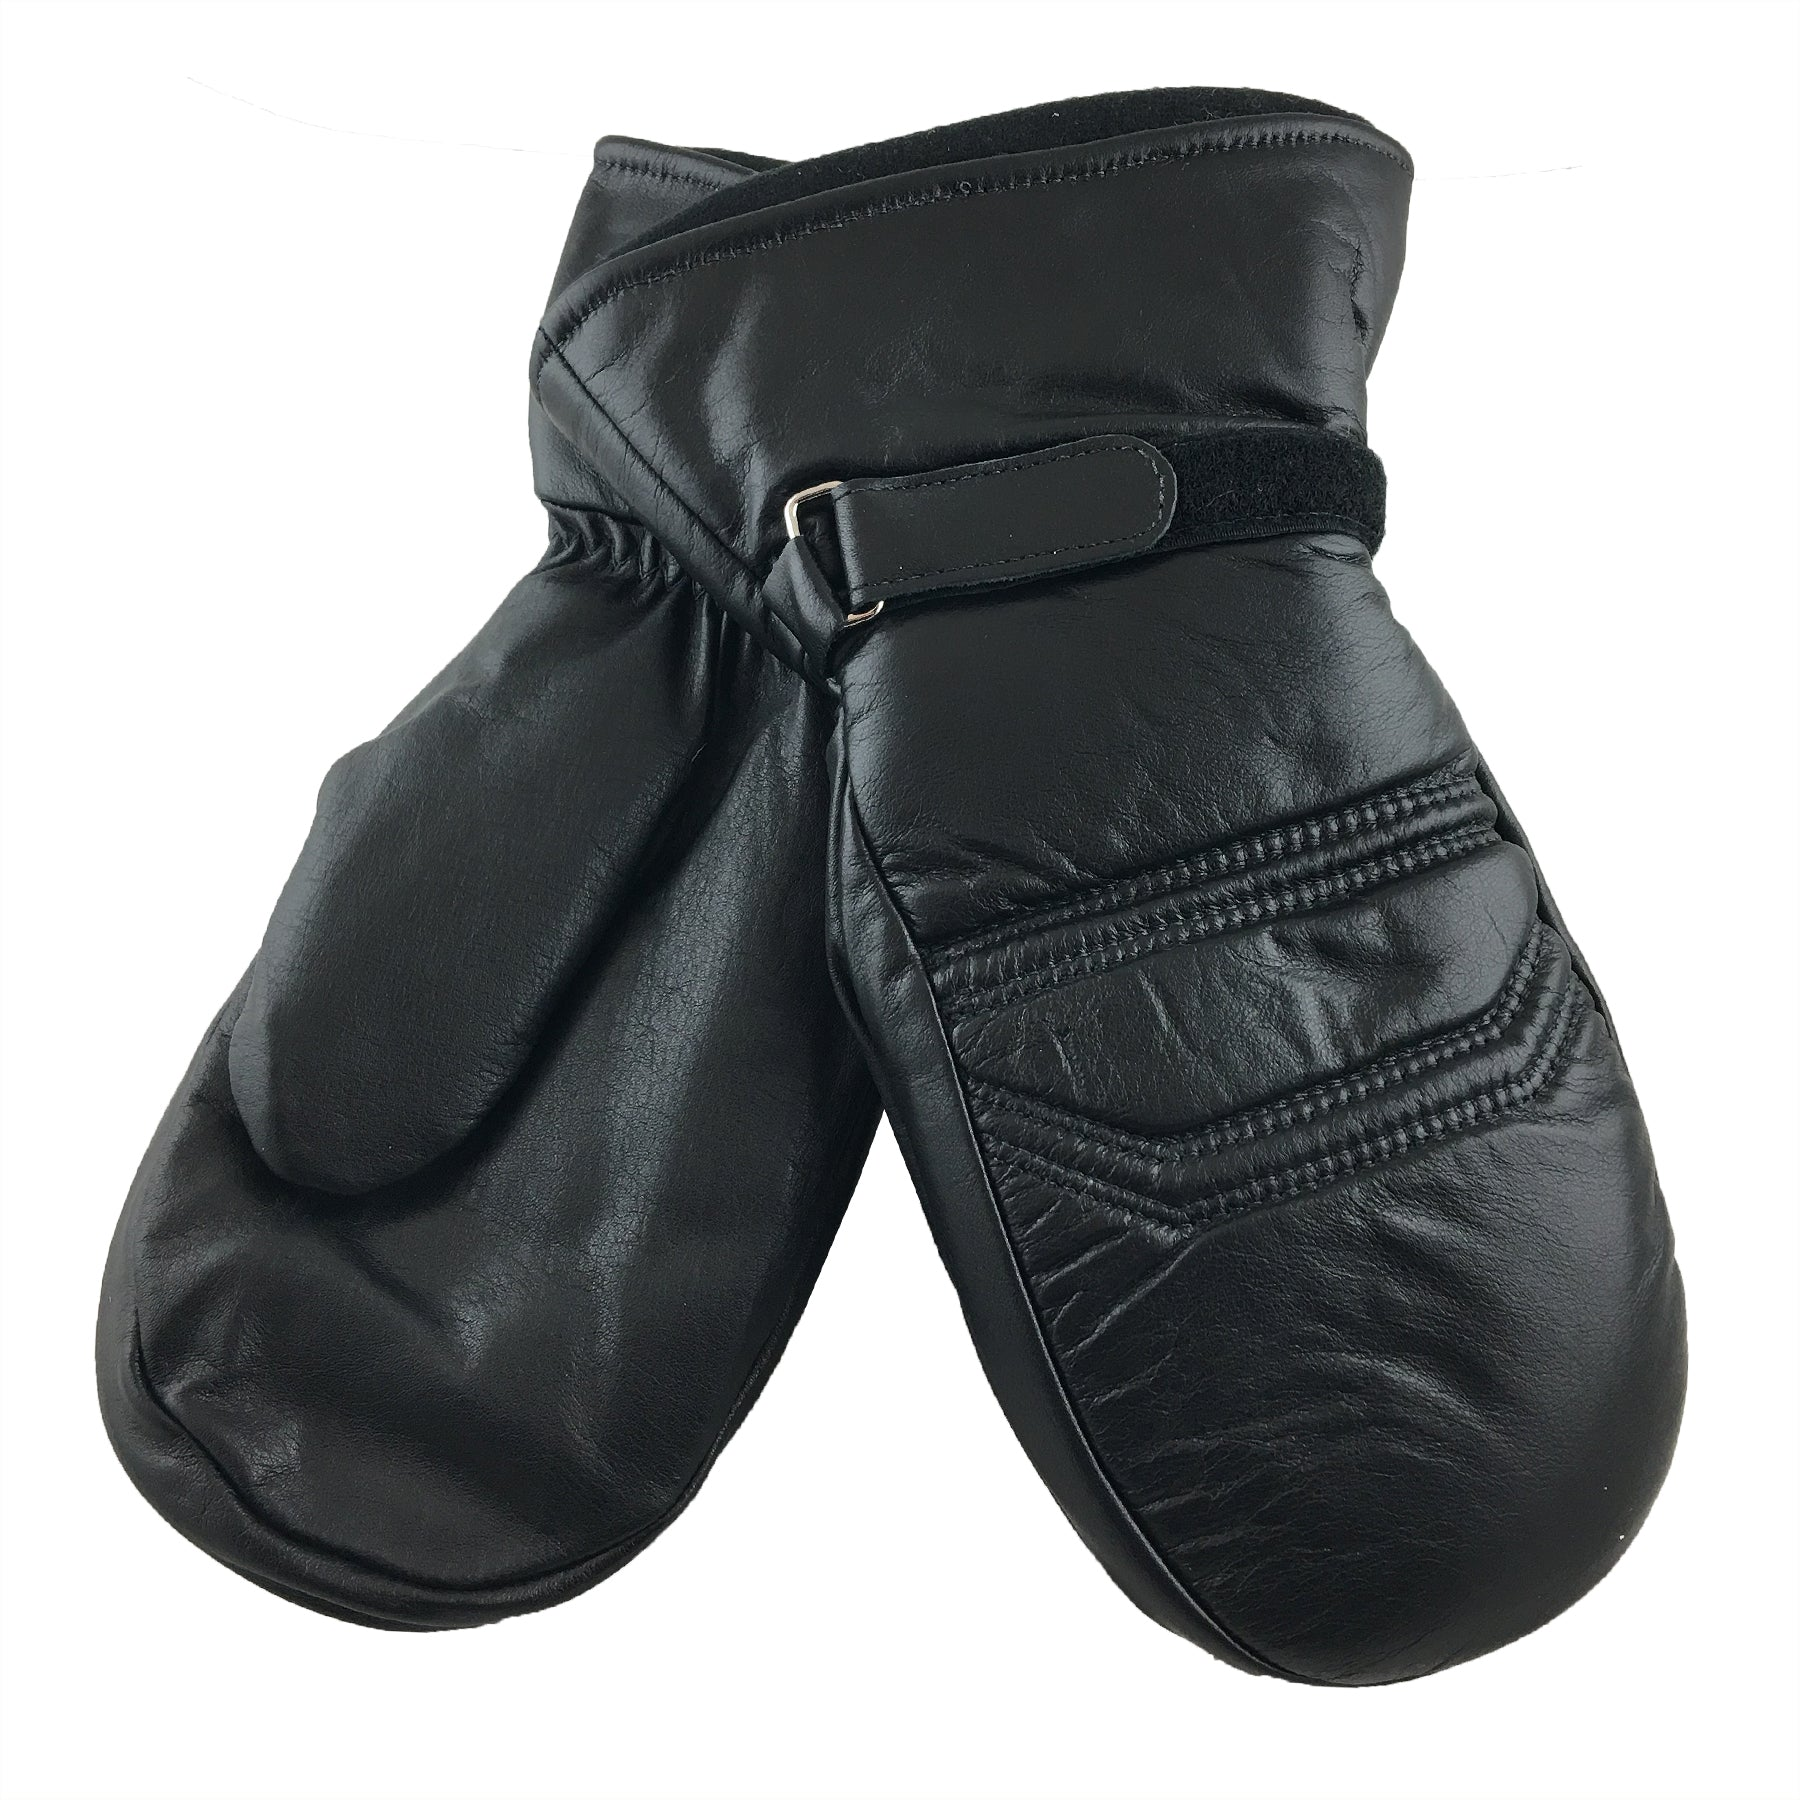 884fd222729ef Mens Long Black Leather Mittens with Removable Thinsulate Lining ...